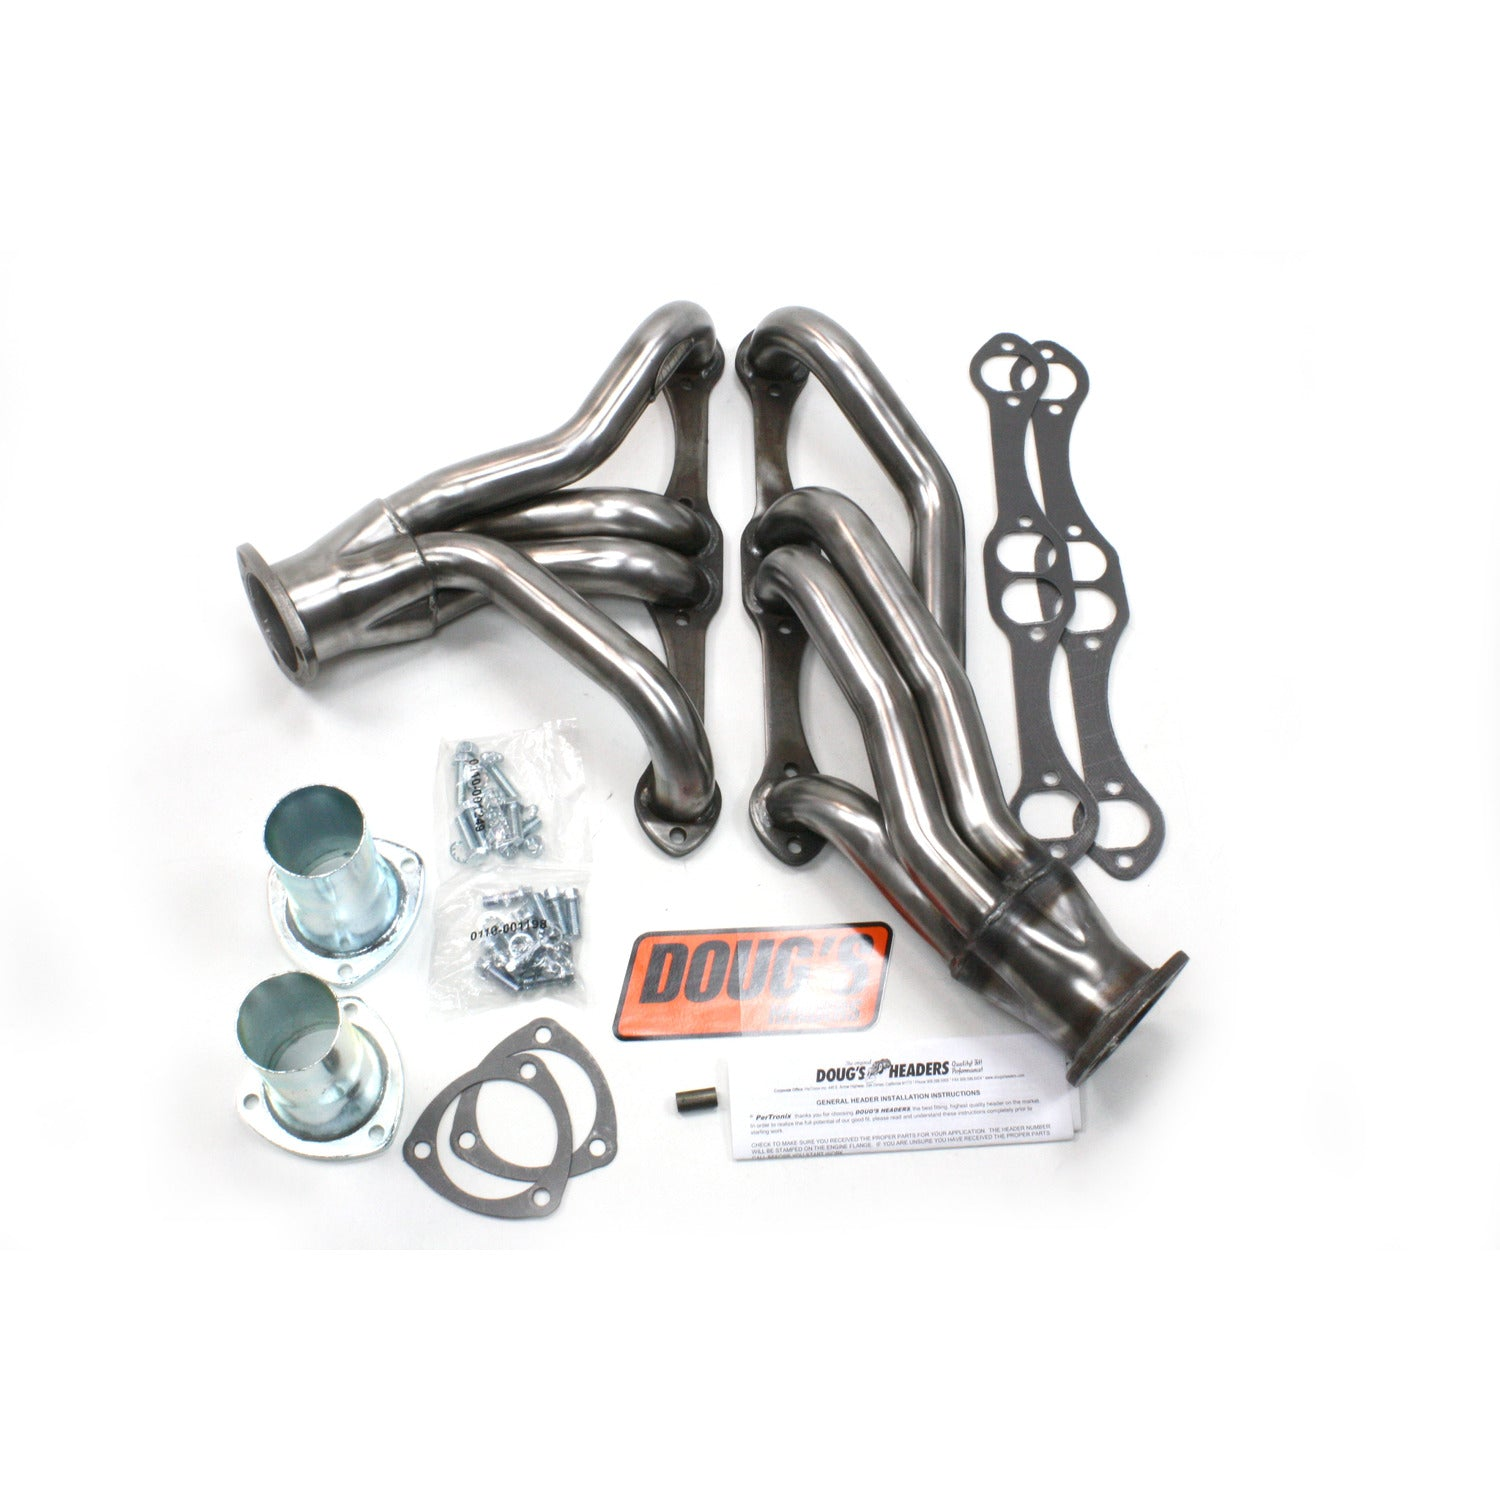 "Doug's Headers D305-R 1 5/8"" 4-Tube Shorty Header Chevrolet 67-81 Camaro 64-77 Chevelle/Malibu 64-77 El Camino 70-77 Monte Carlo 71-94 Passenger Car/Wagon 265-400 Chevrolet Engine Raw Steel"